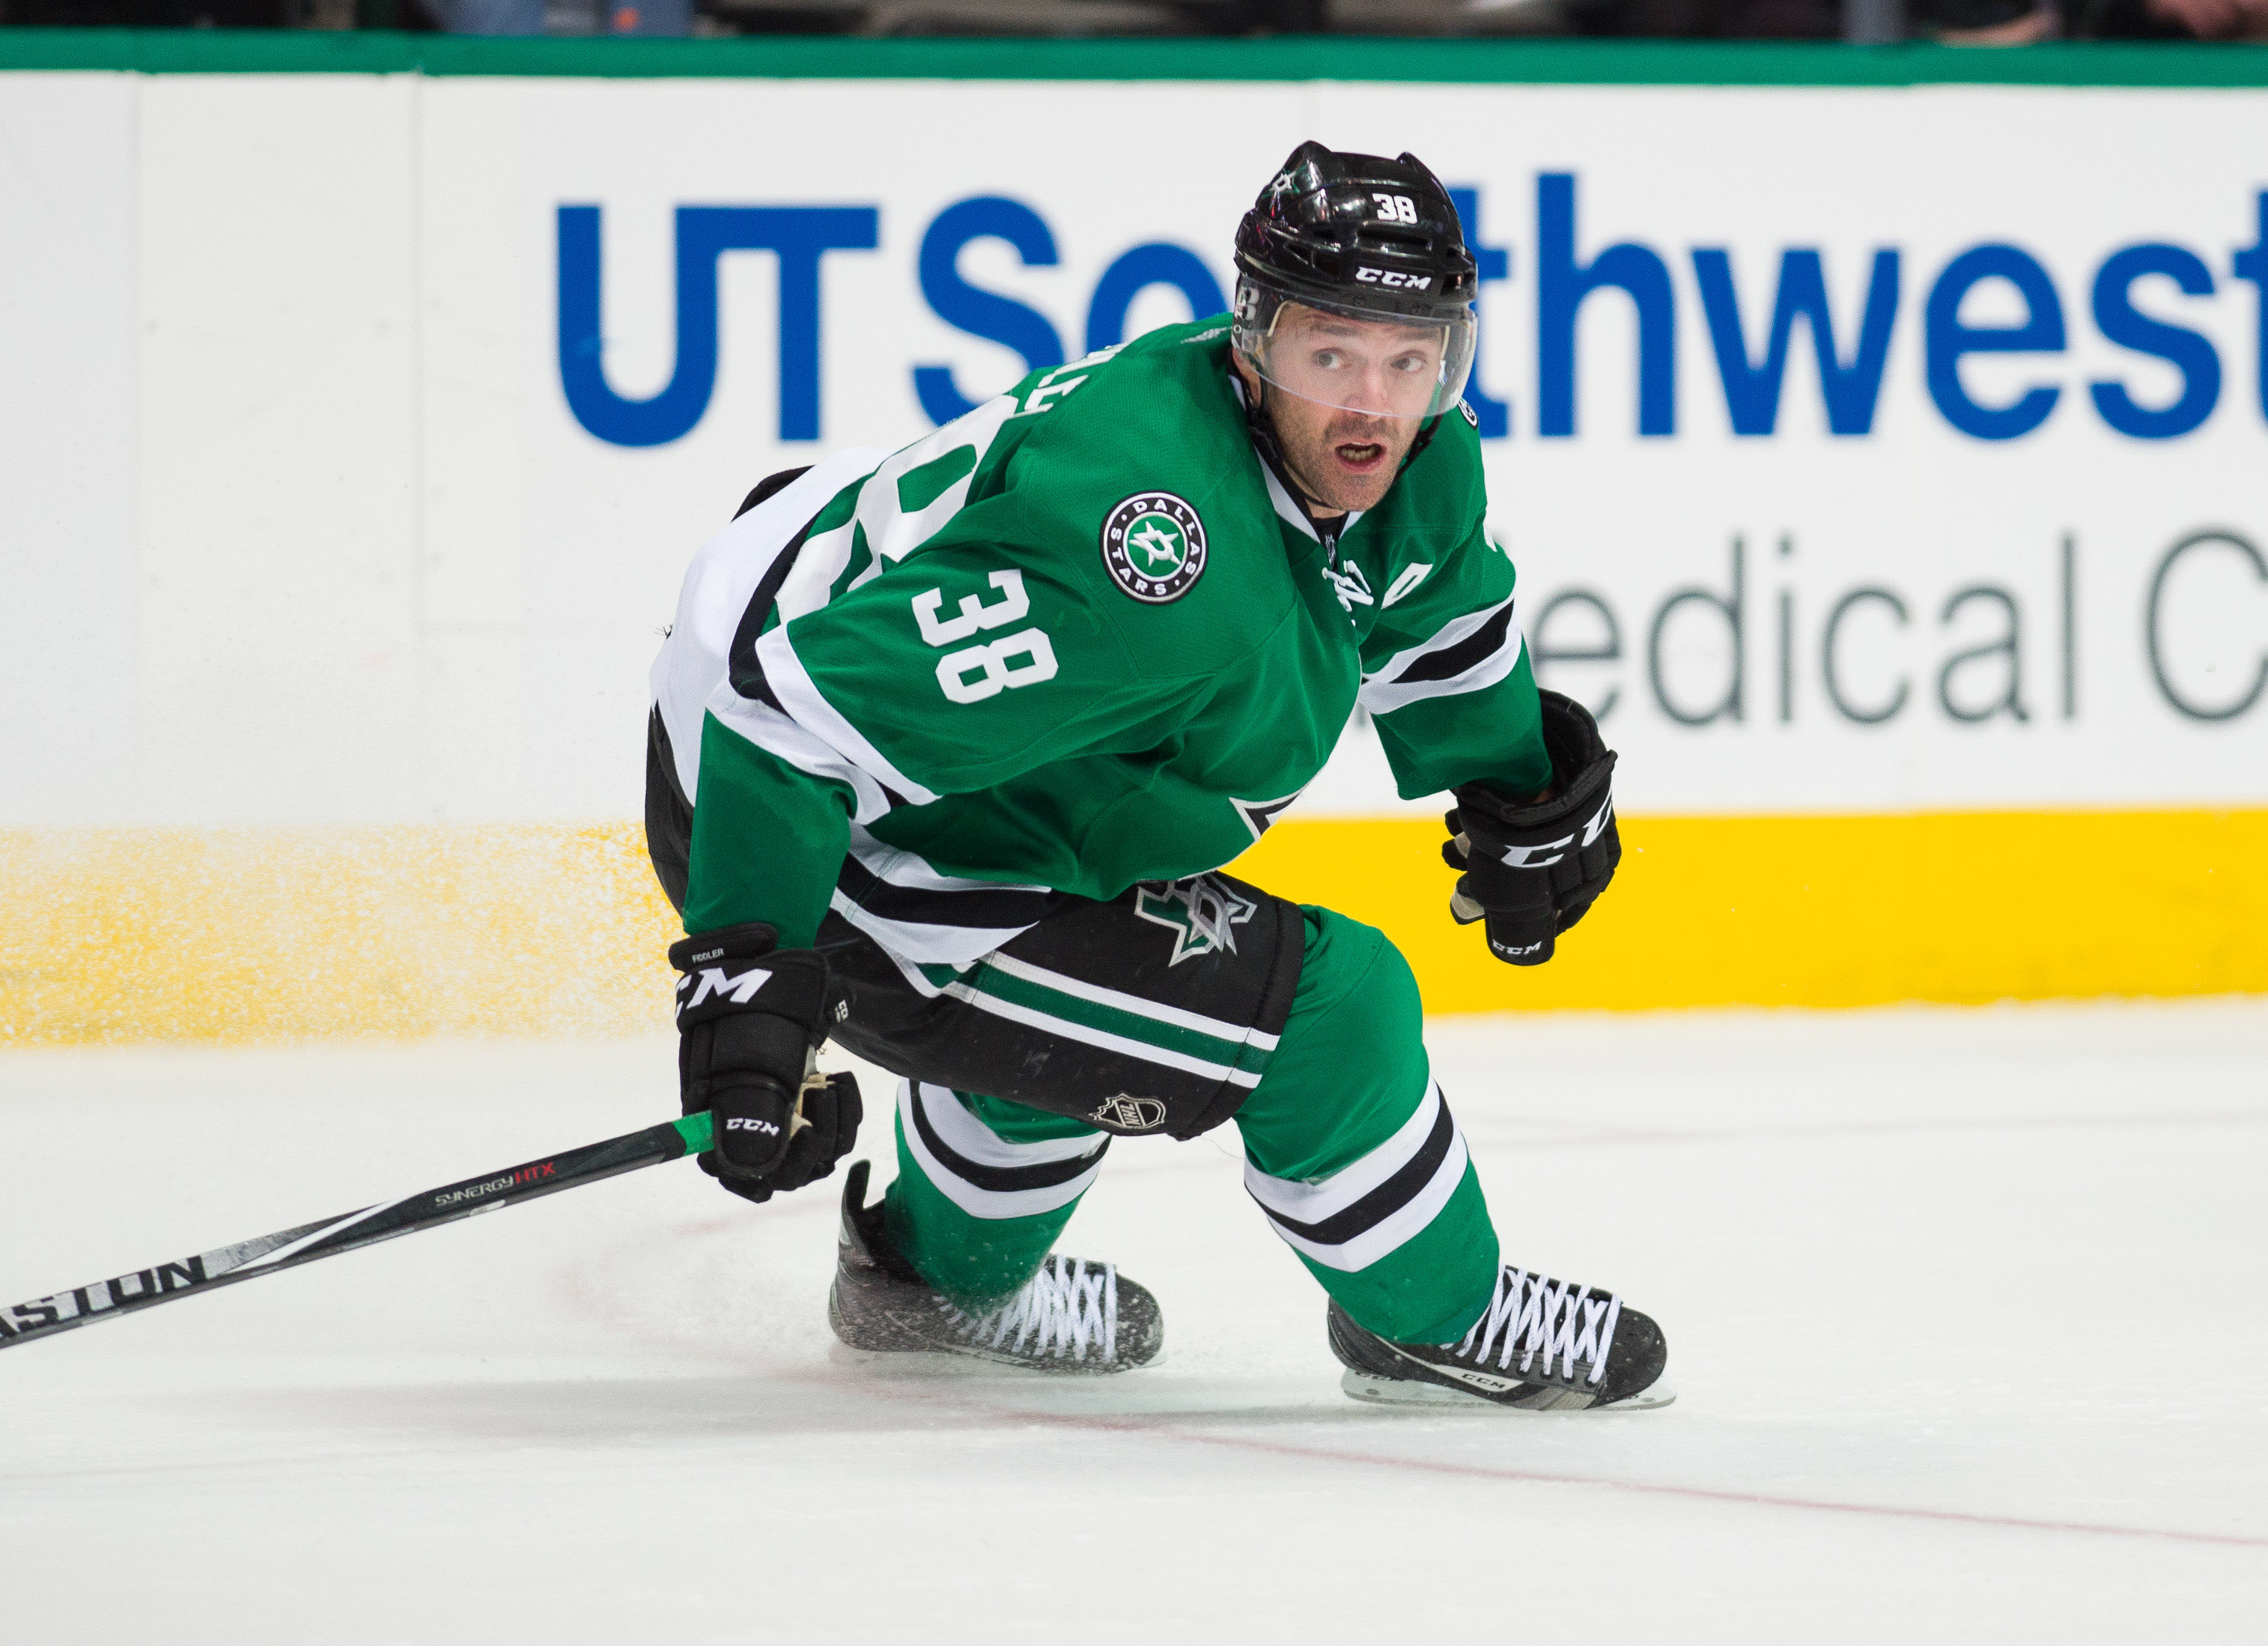 The question is never IF Vernon Fiddler will contribute to the Dallas Stars, it's HOW he'll contribute.